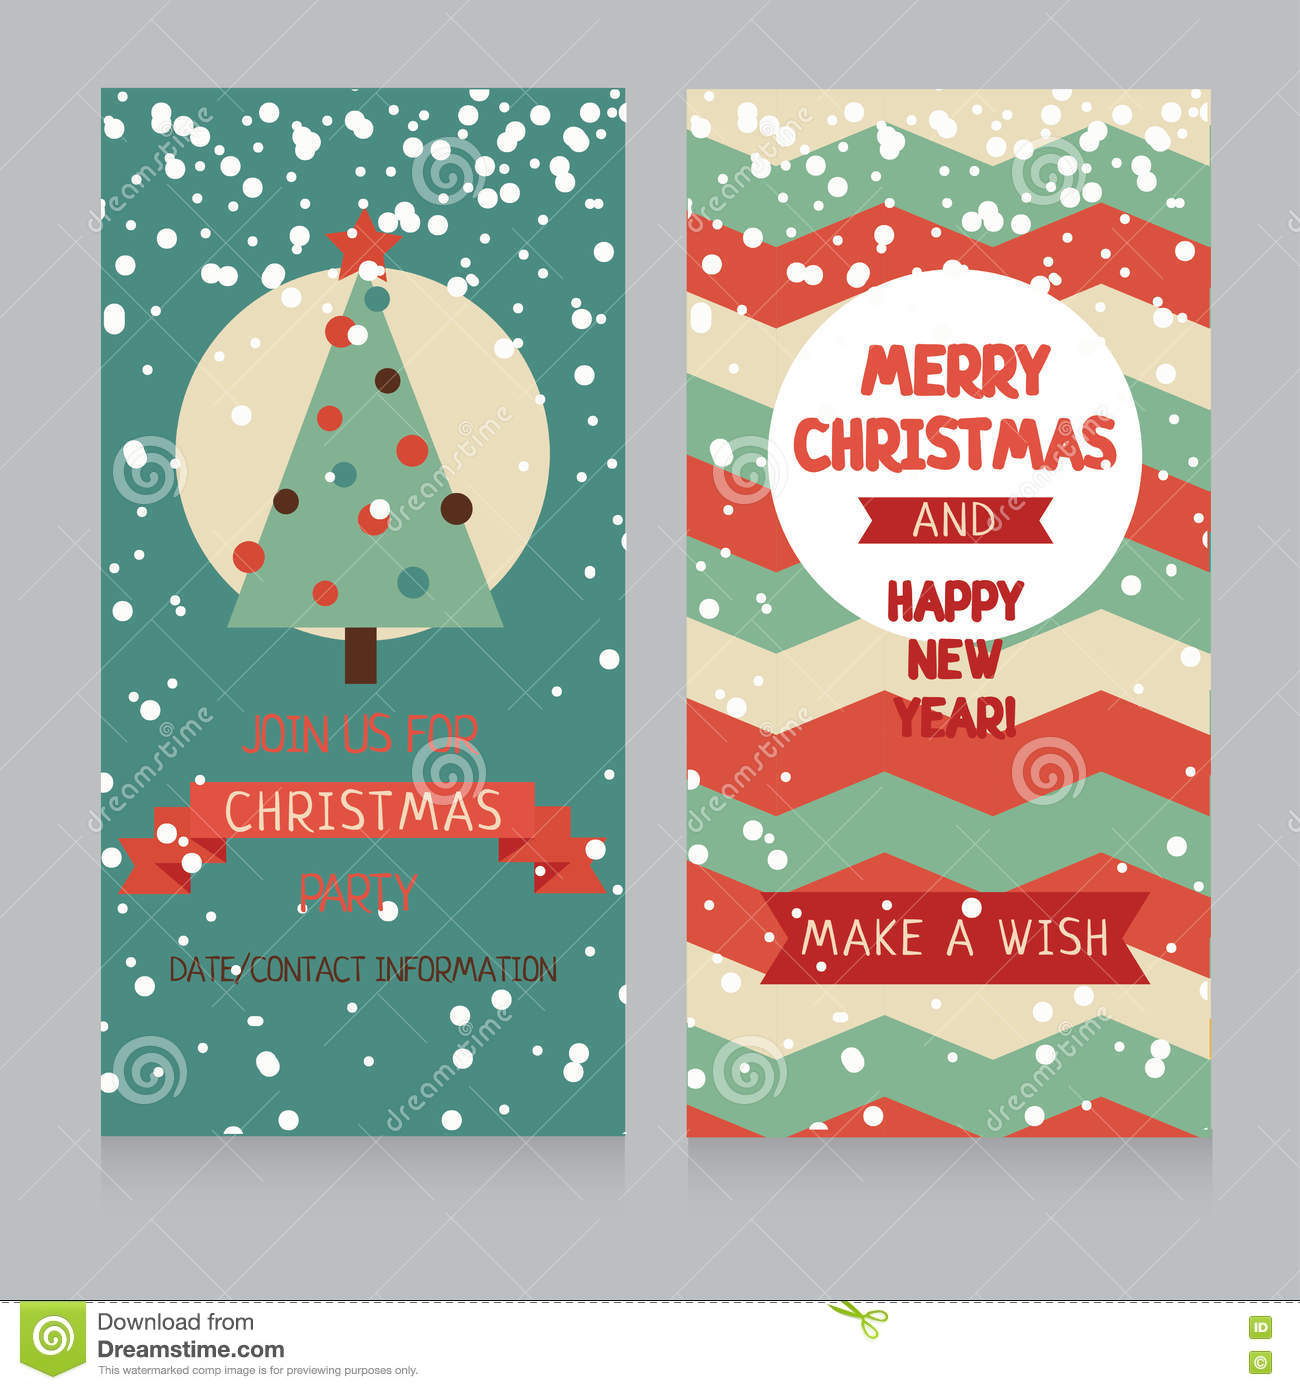 Cute Christmas Party.Cute Banners For Christmas Party In Retro Palette Stock